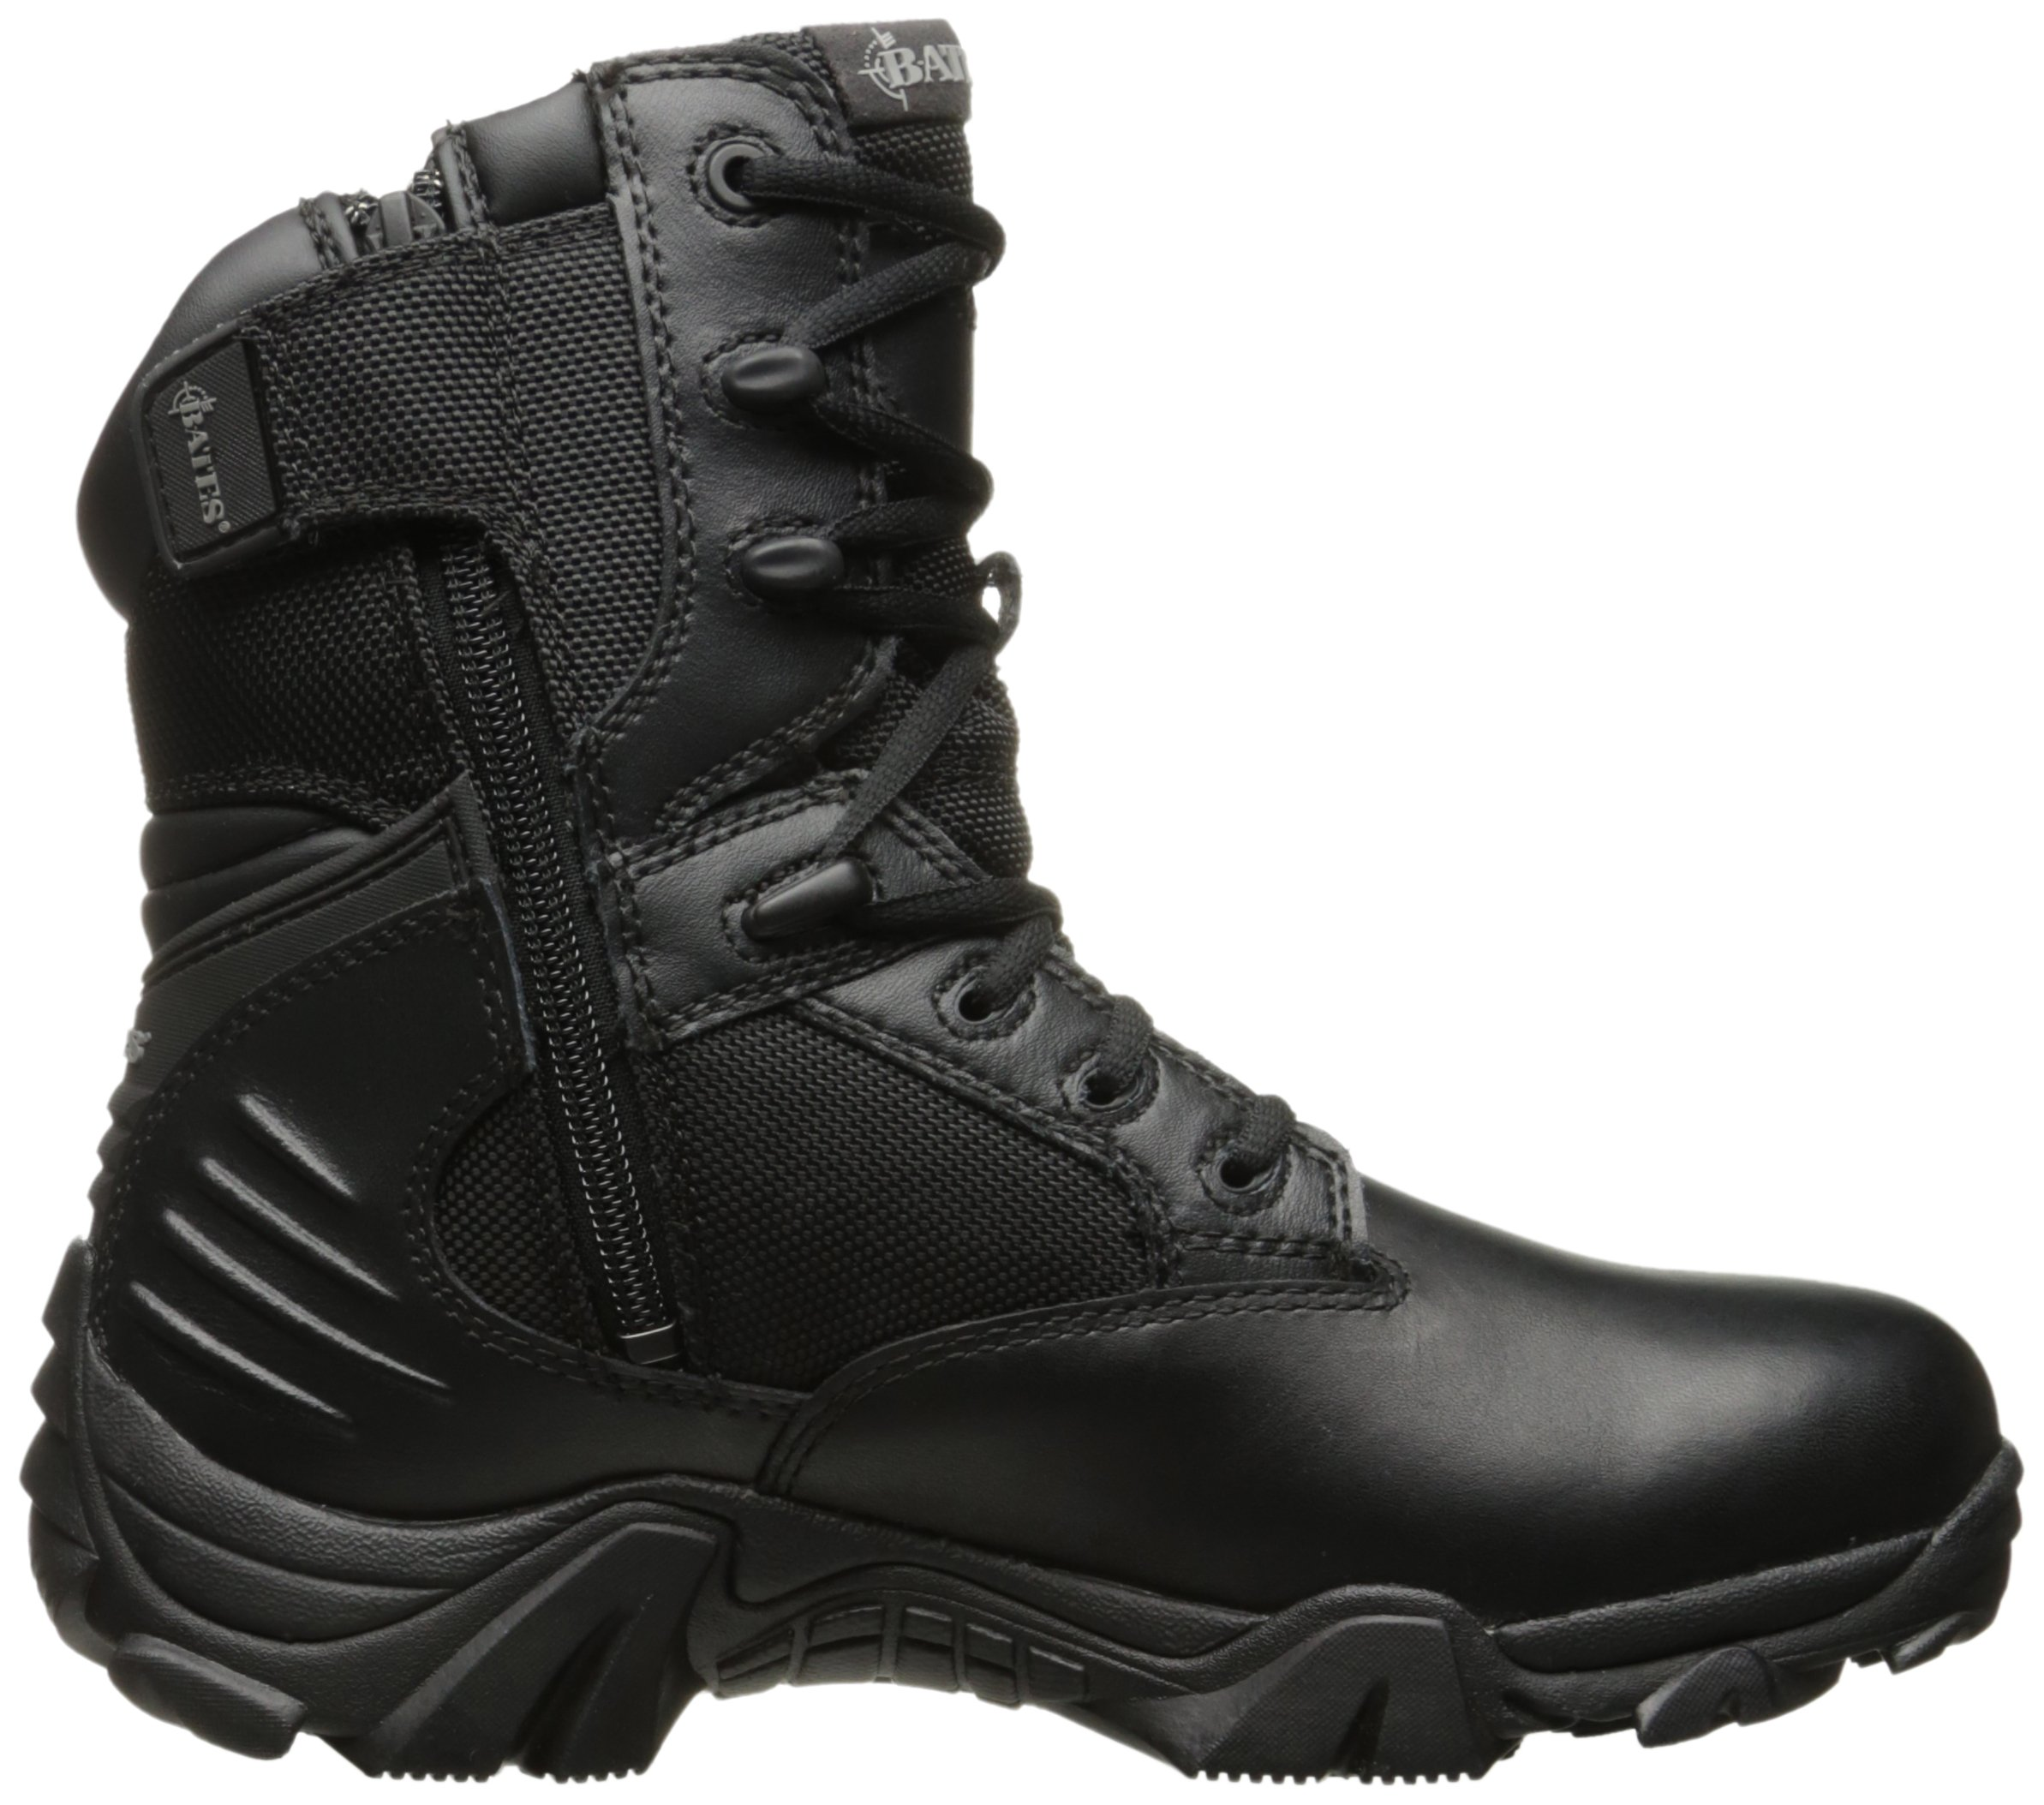 Bates Women's GX-8 Gore-Tex Insulated Side Zip Fire and Safety Shoe, Black, 9 M US by Bates (Image #7)